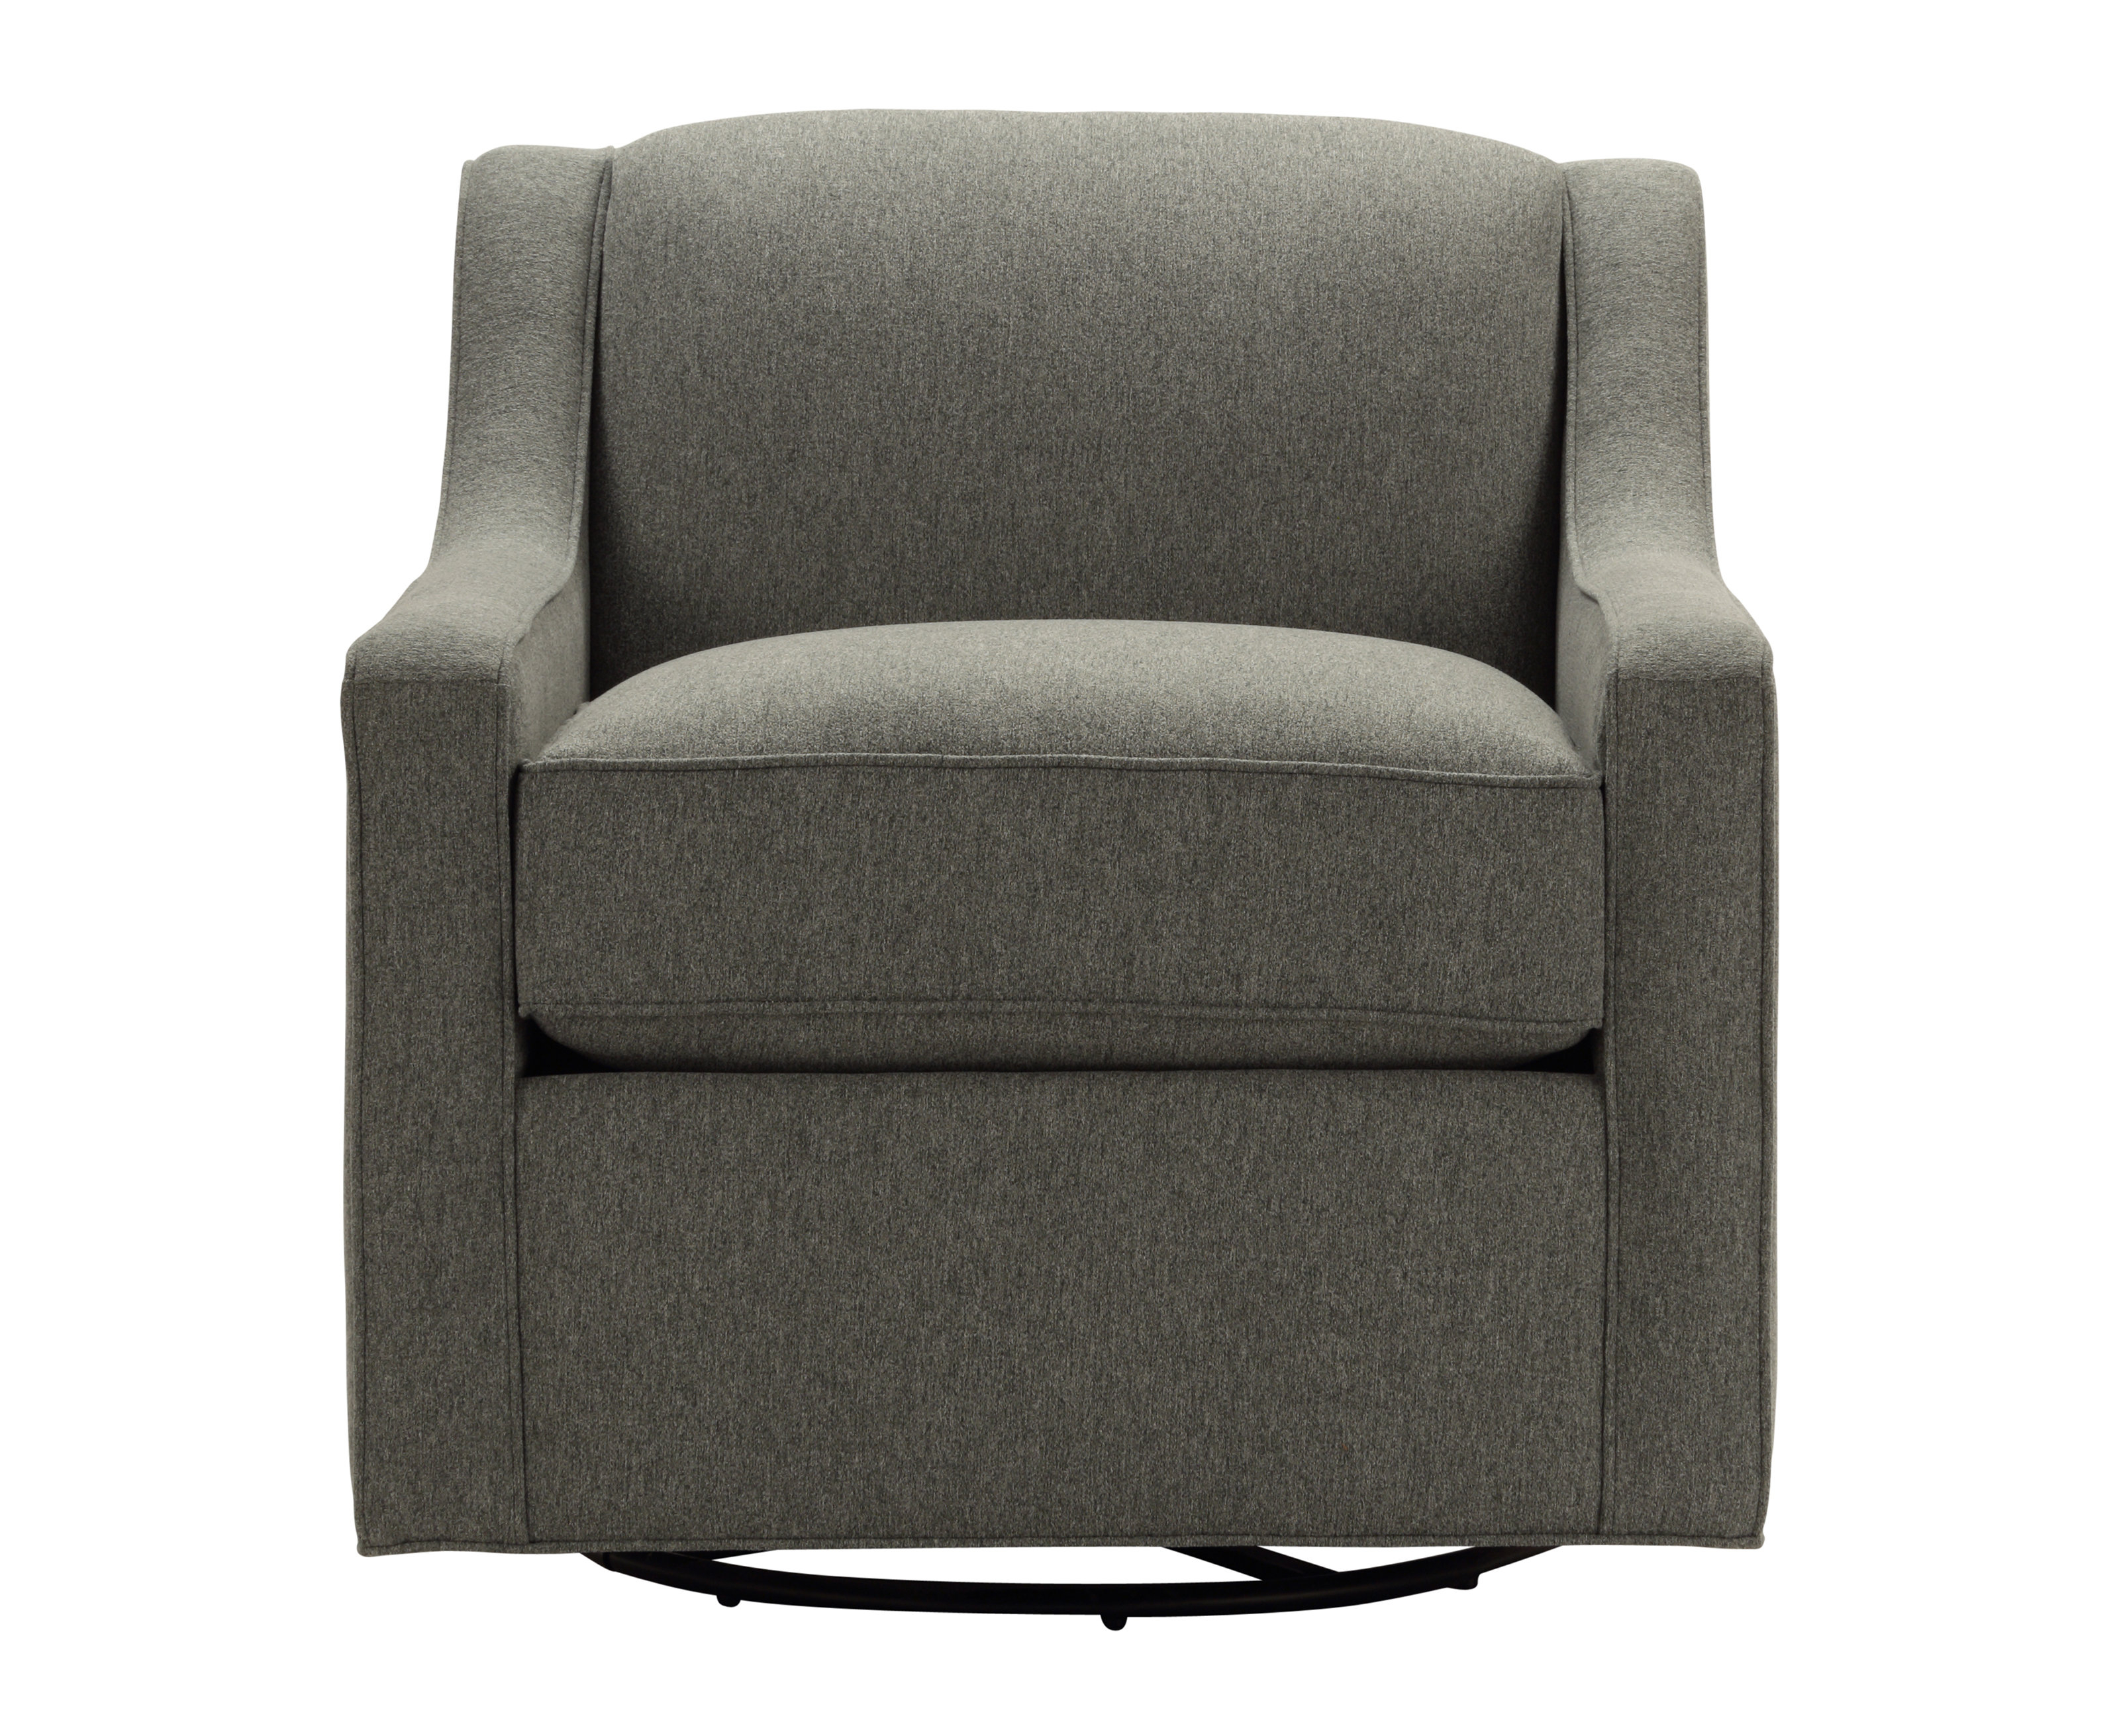 Corrigan Studio Annmarie Swivel Glider Recliner | Wayfair With Mari Swivel Glider Recliners (View 2 of 25)